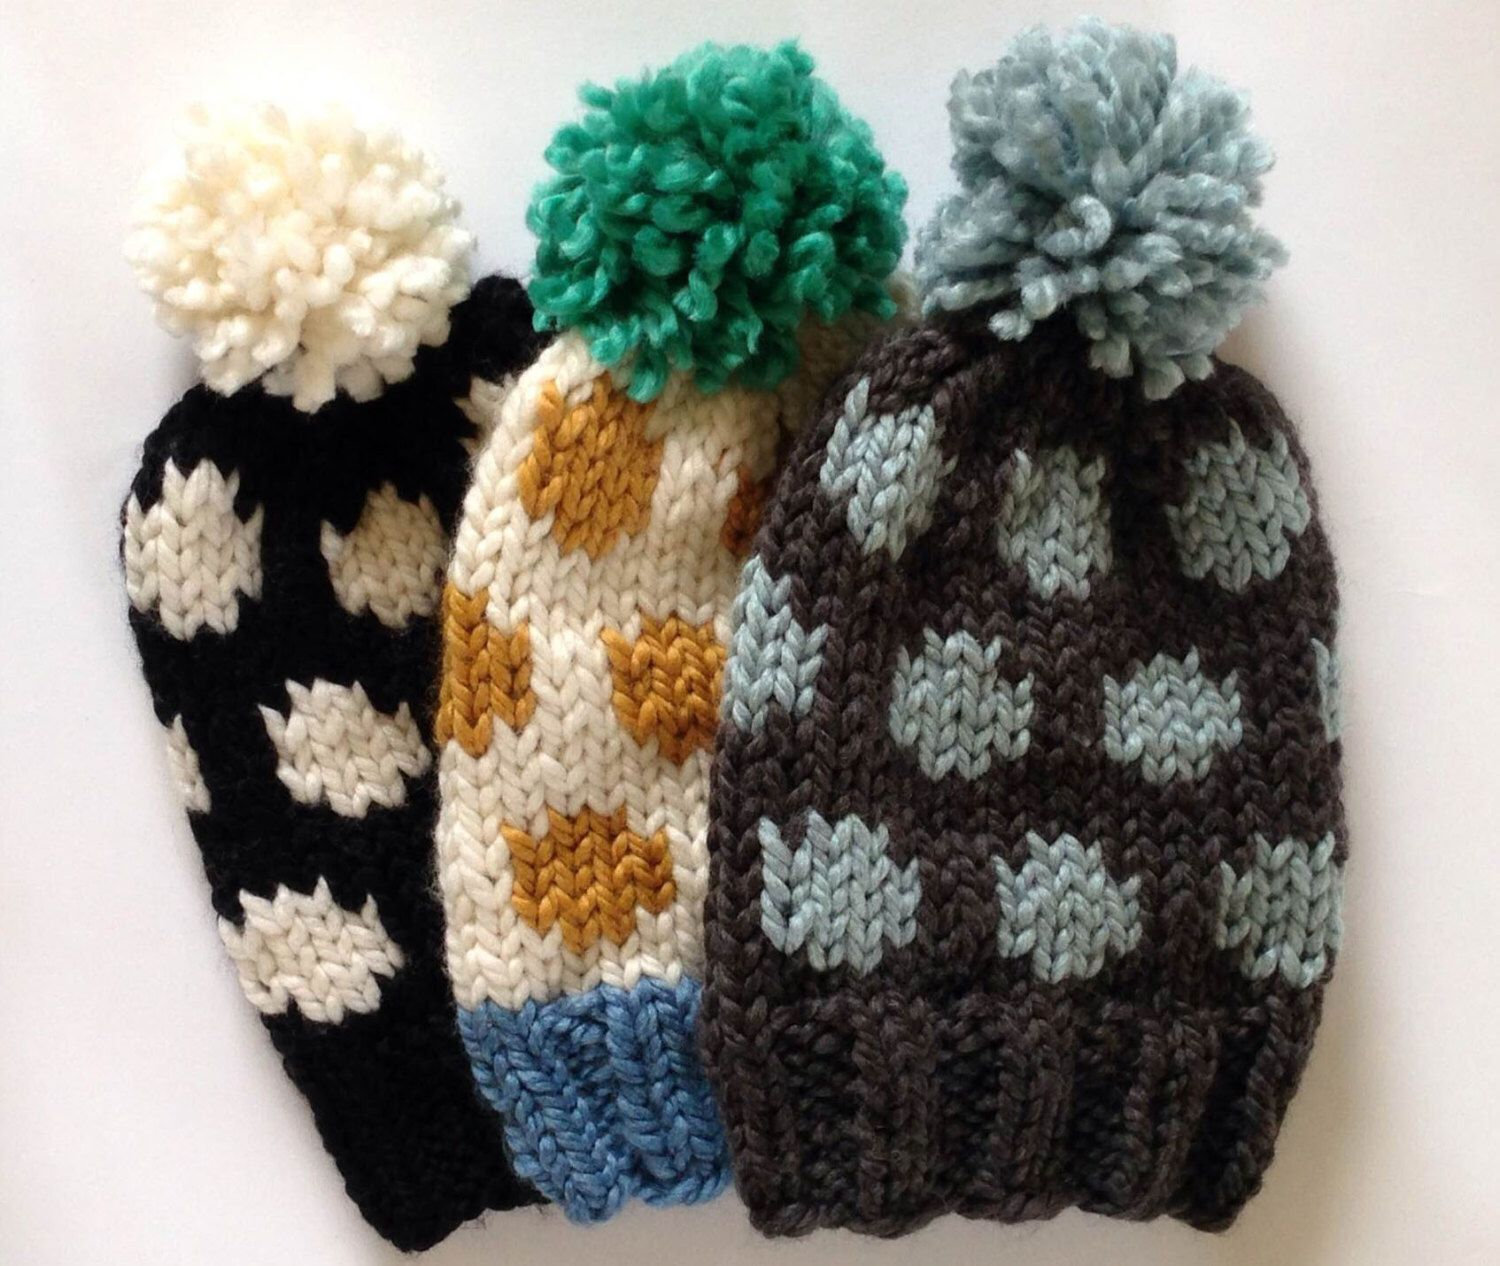 KNITTING PATTERN Polka Dot Chunky Knit Slouchy Beanie Toque Fall Winter Hat Accessory by emilygreeneblue on Etsy https://www.etsy.com/listing/170841337/knitting-pattern-polka-dot-chunky-knit